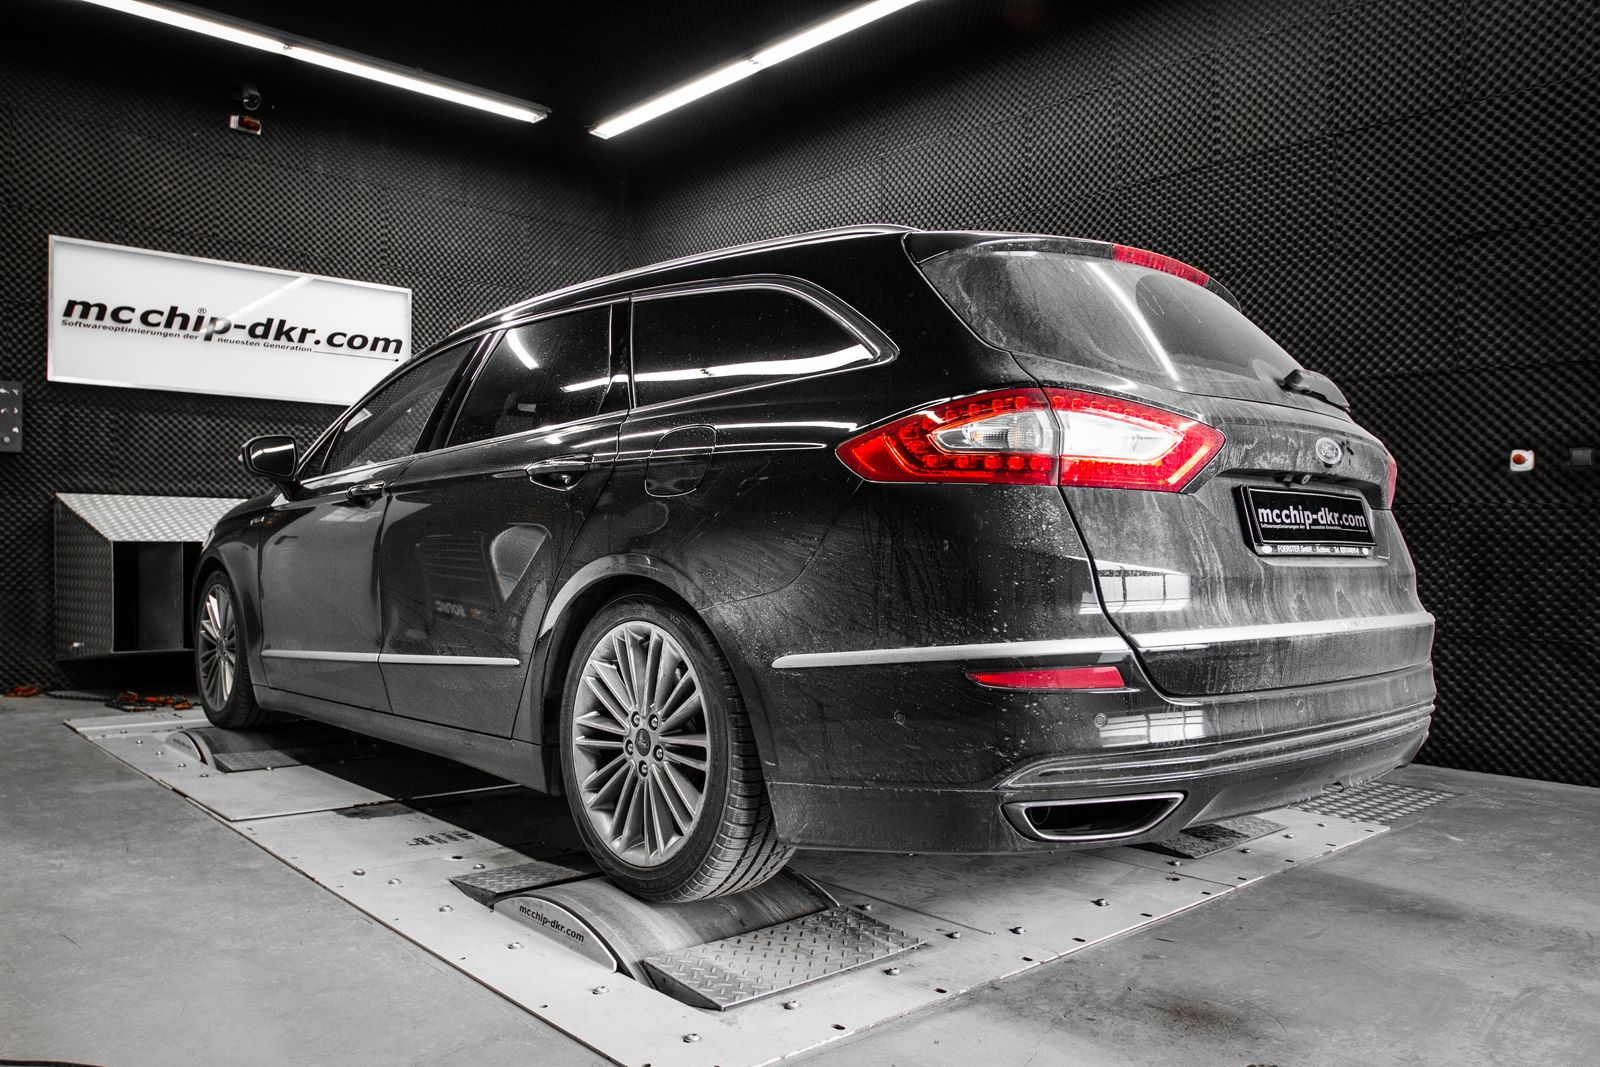 Ford Mondeo 2.0 Bi-Turbo Diesel Tuned to 235 HP by Mcchip ...